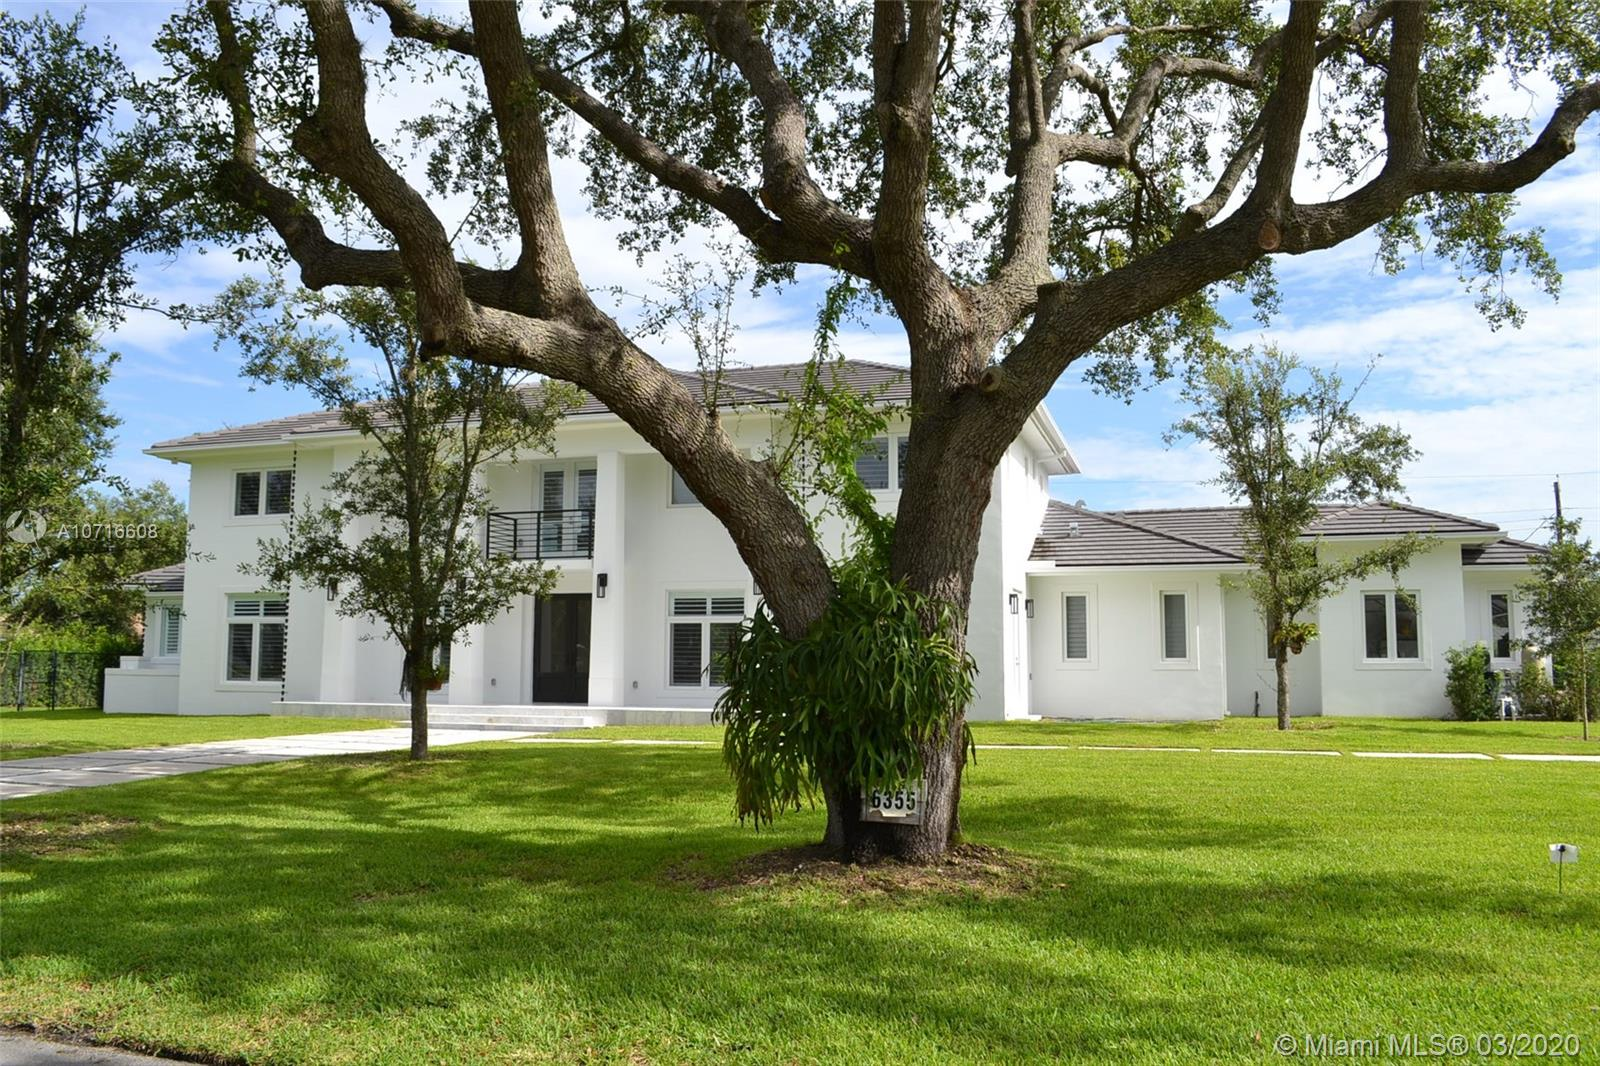 6355 SW 113th St, Kendall, Florida